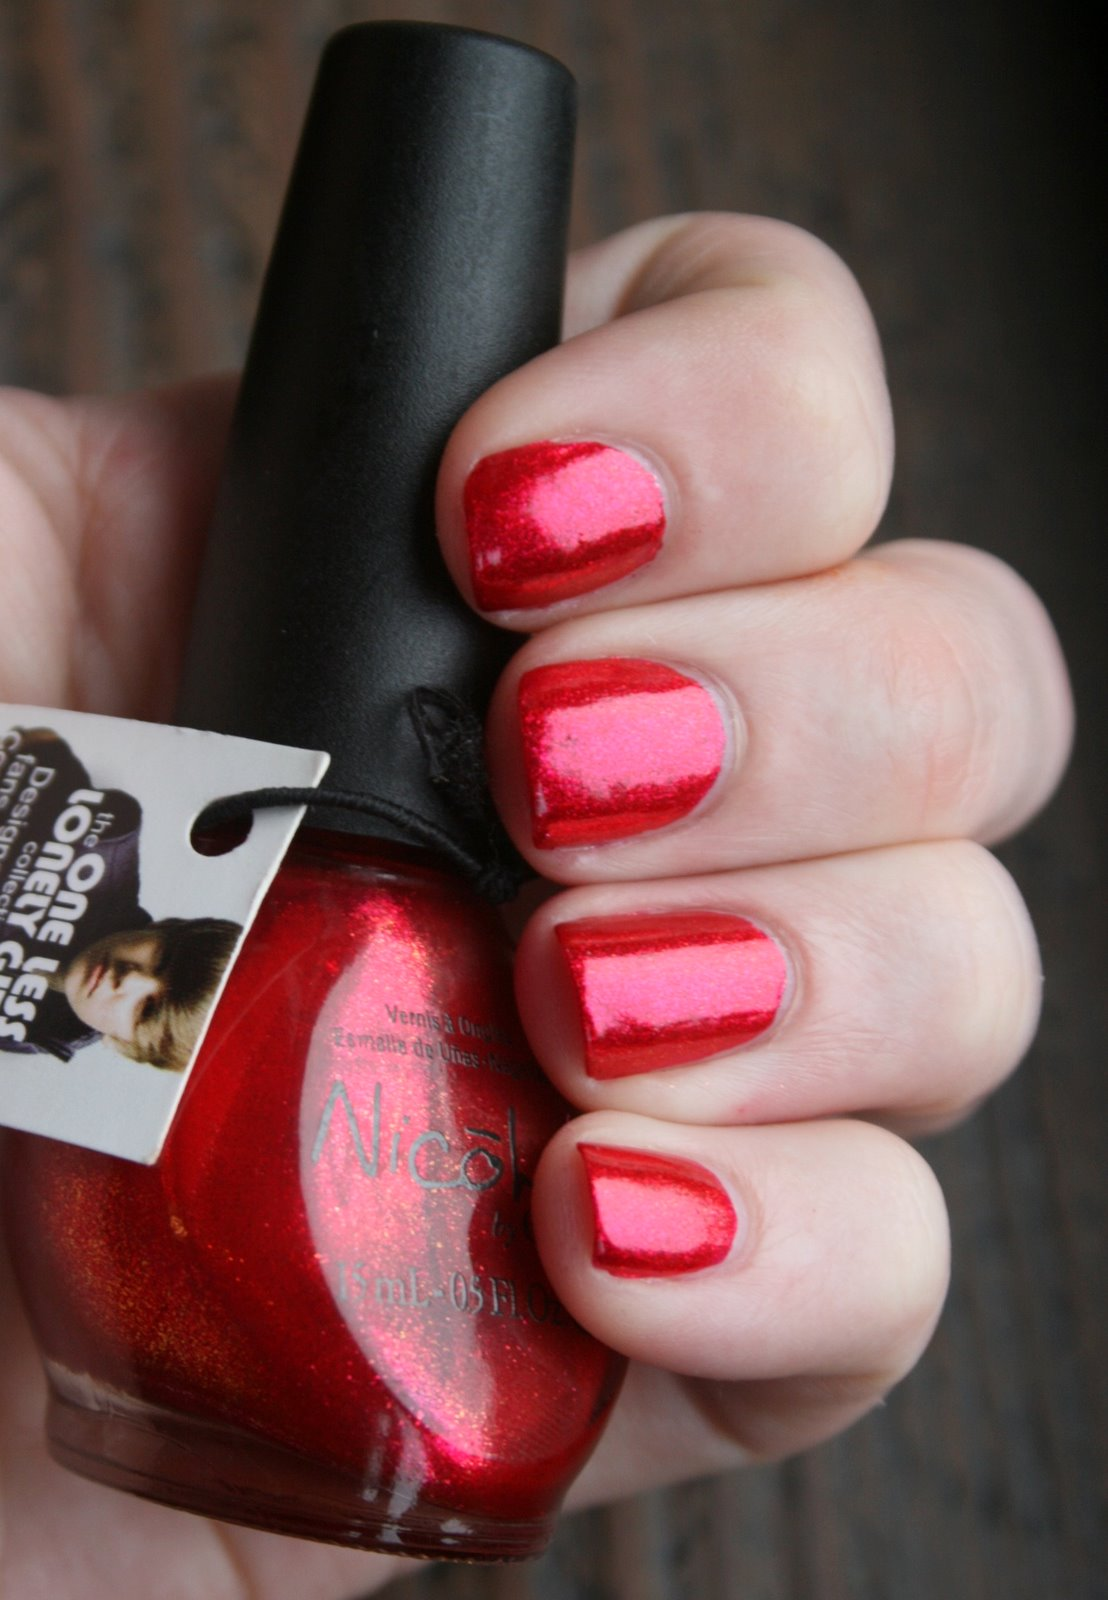 Nicole by OPI OMB! swatch